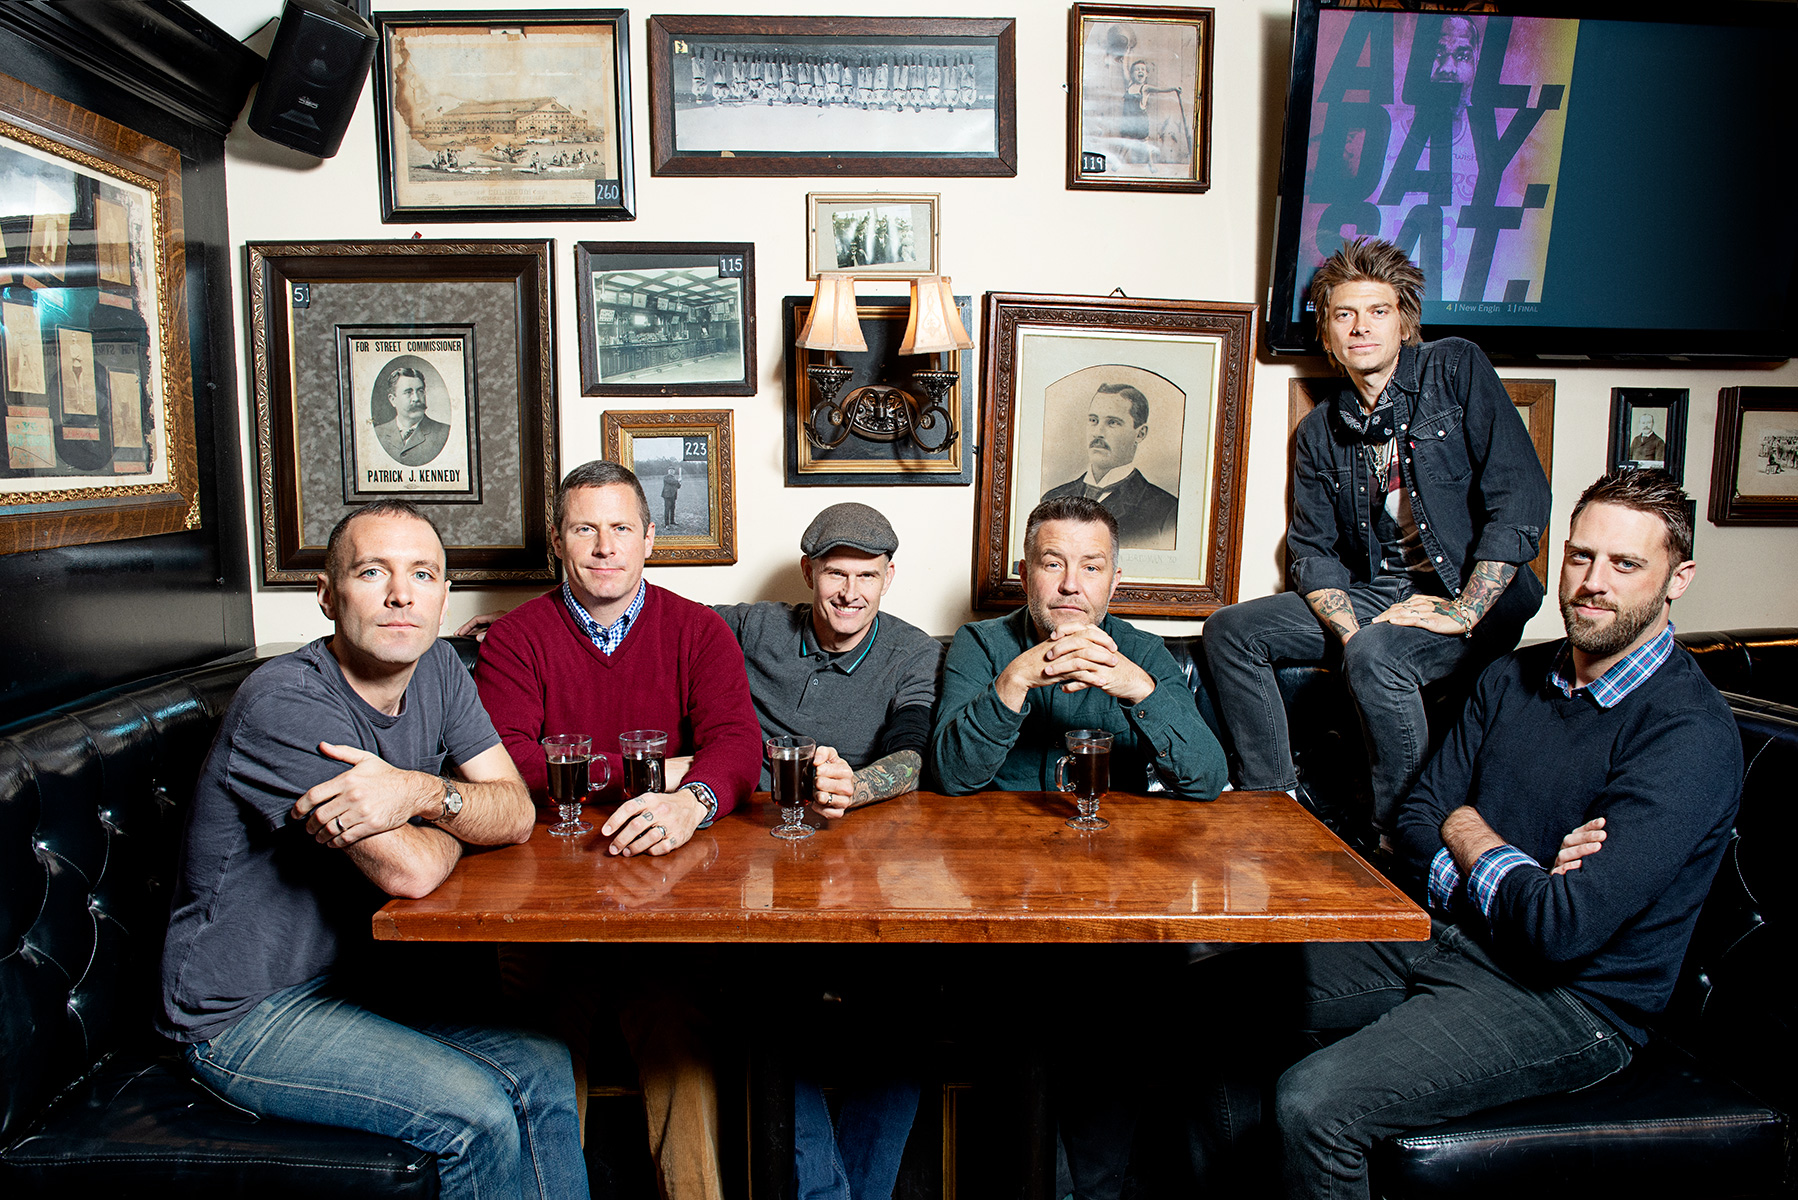 The Dropkick Murphys (pictured) will be joined by Bruce Springsteen for a free online concert on May 29.